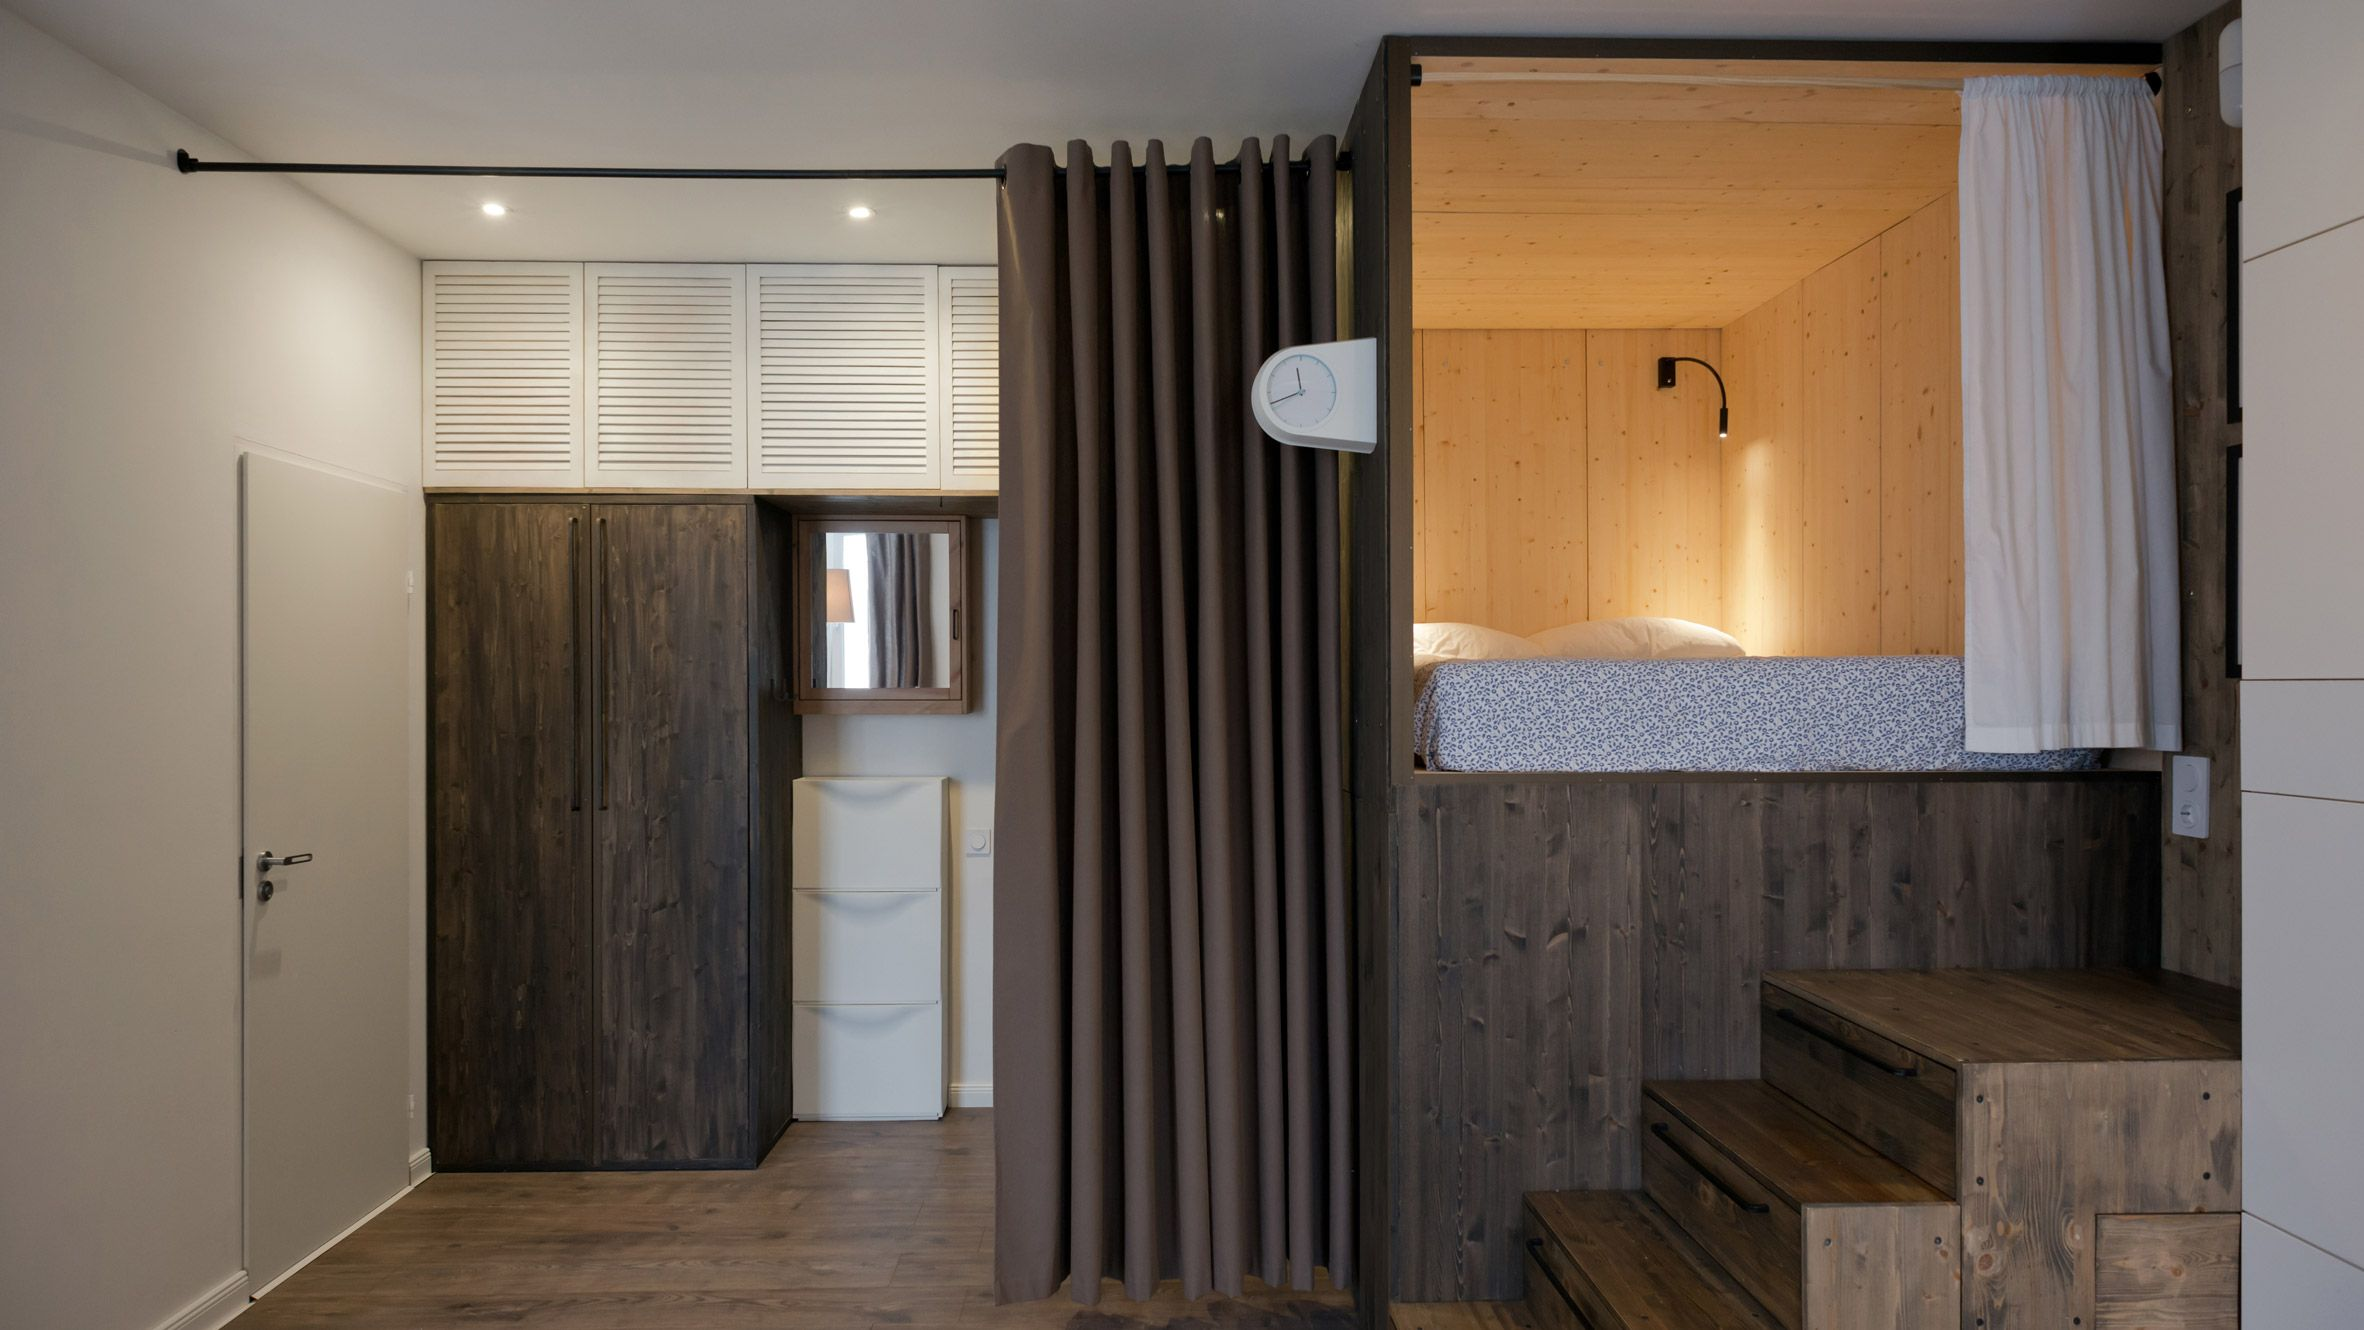 Studio Bazi\'s tiny self-designed home features a wooden \